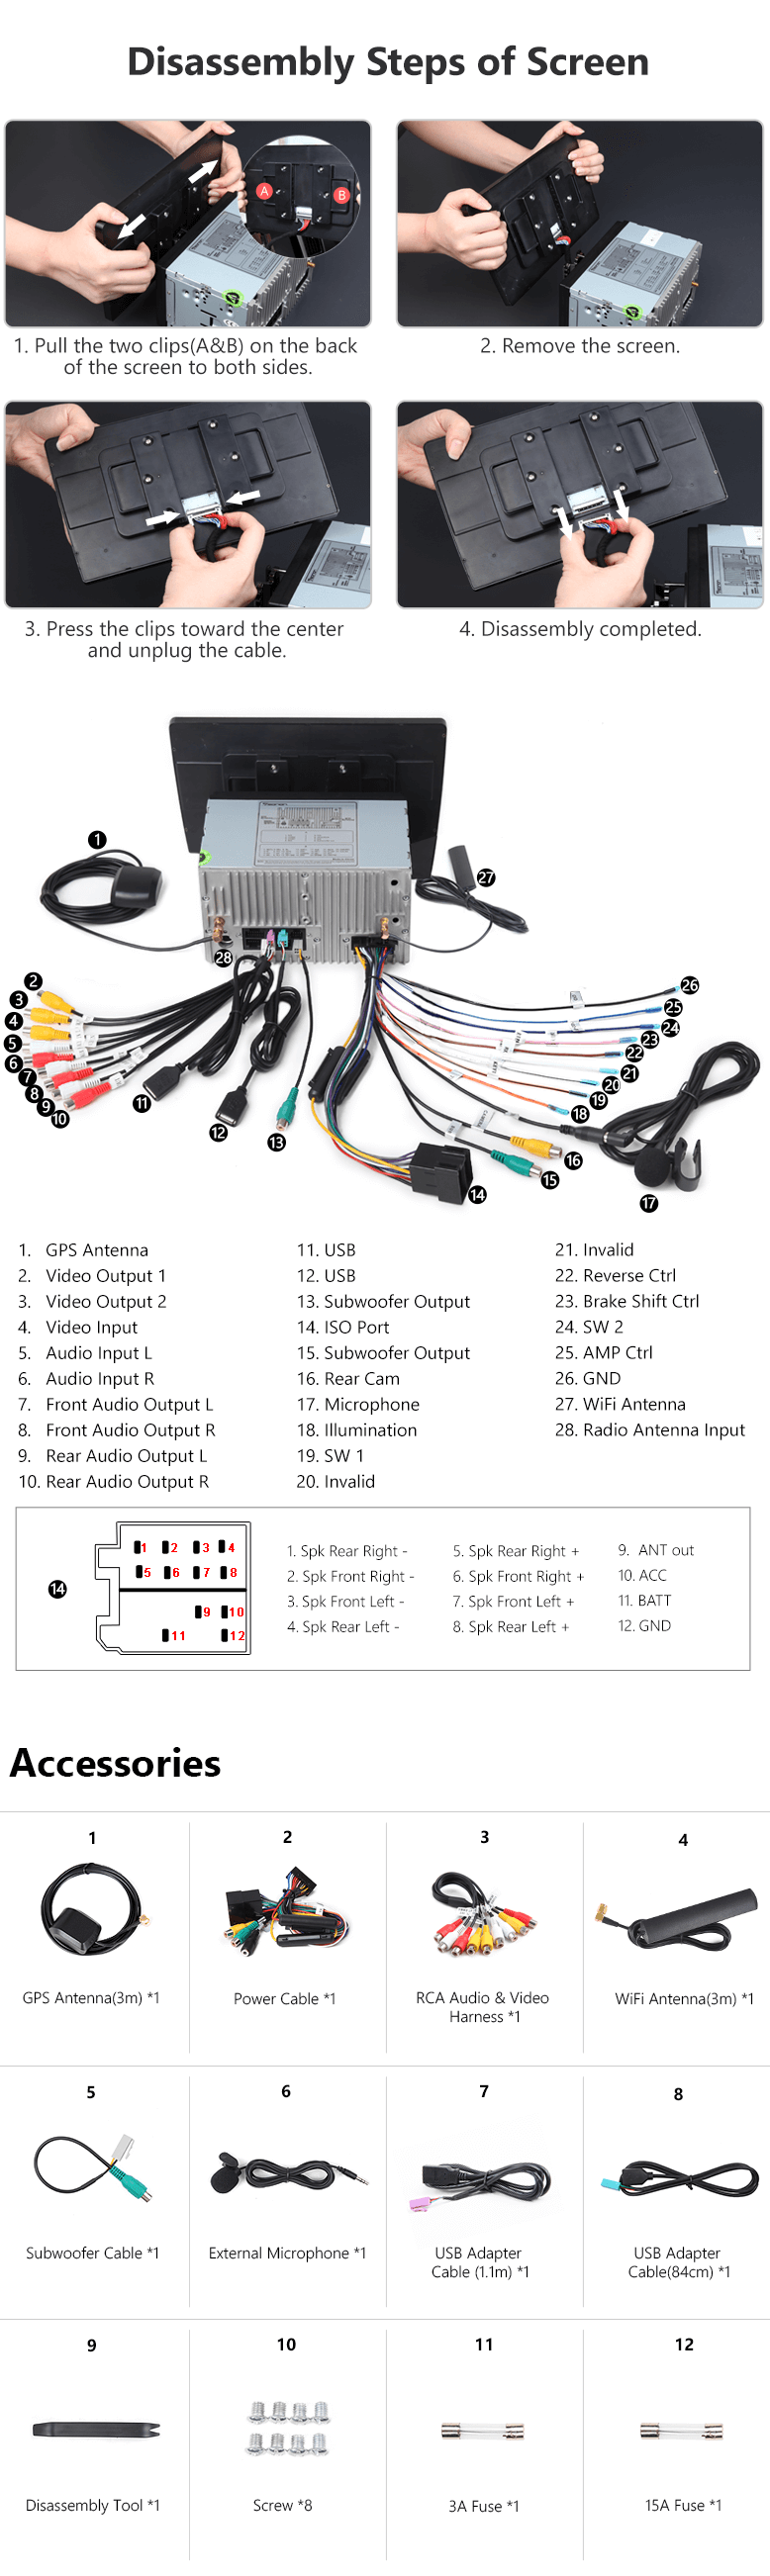 Eonon Wiring Diagram | Wiring Diagram on 4 wire relay, 4 wire compressor, 4 wire headlight, 4 wire parts, 4 wire regulator, 4 wire cable, 4 wire generator, 4 wire solenoid, 4 wire circuit, 4 wire plug, 4 wire switch diagram, 4 wire transformer, 4 wire electrical wiring, 4 wire trailer diagram, 4-way circuit diagram, 4 wire arduino diagram, 4 wire alternator, 4 wire fan diagram, 4 wire coil, 4 wire furnace diagram,